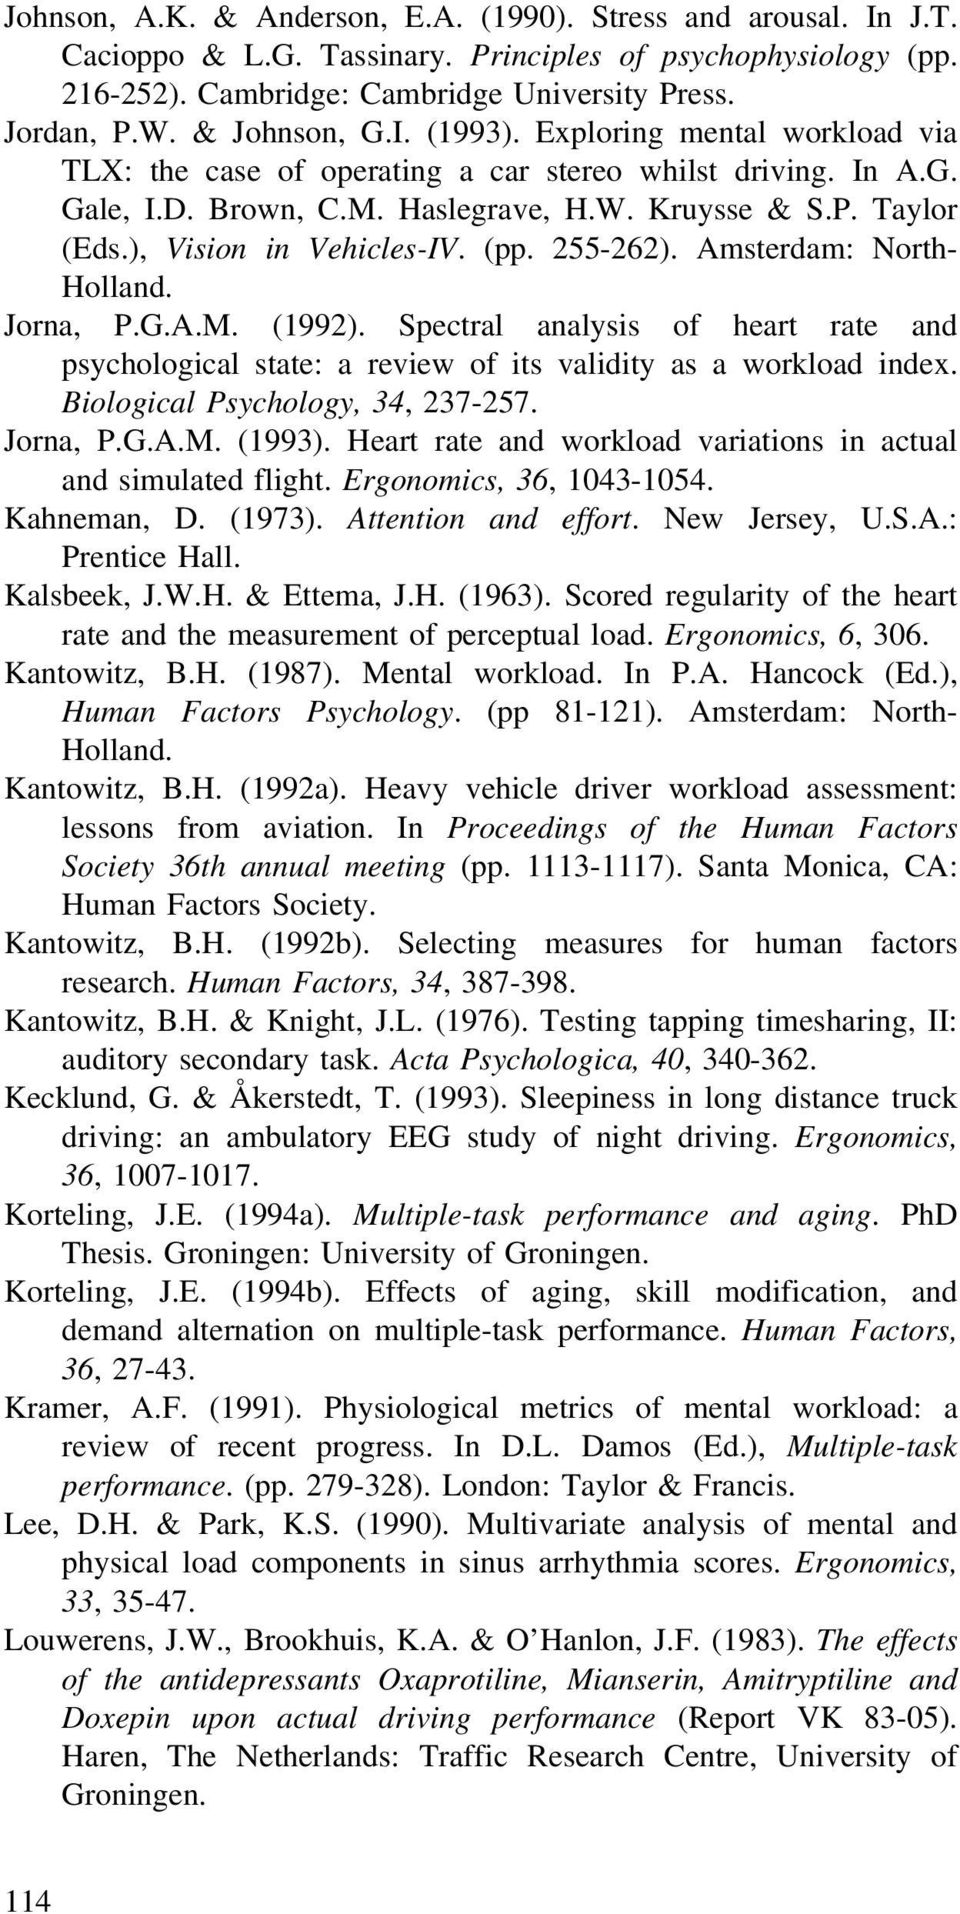 ), Vision in Vehicles-IV. (pp. 255-262). Amsterdam: North- Holland. Jorna, P.G.A.M. (1992). Spectral analysis of heart rate and psychological state: a review of its validity as a workload index.